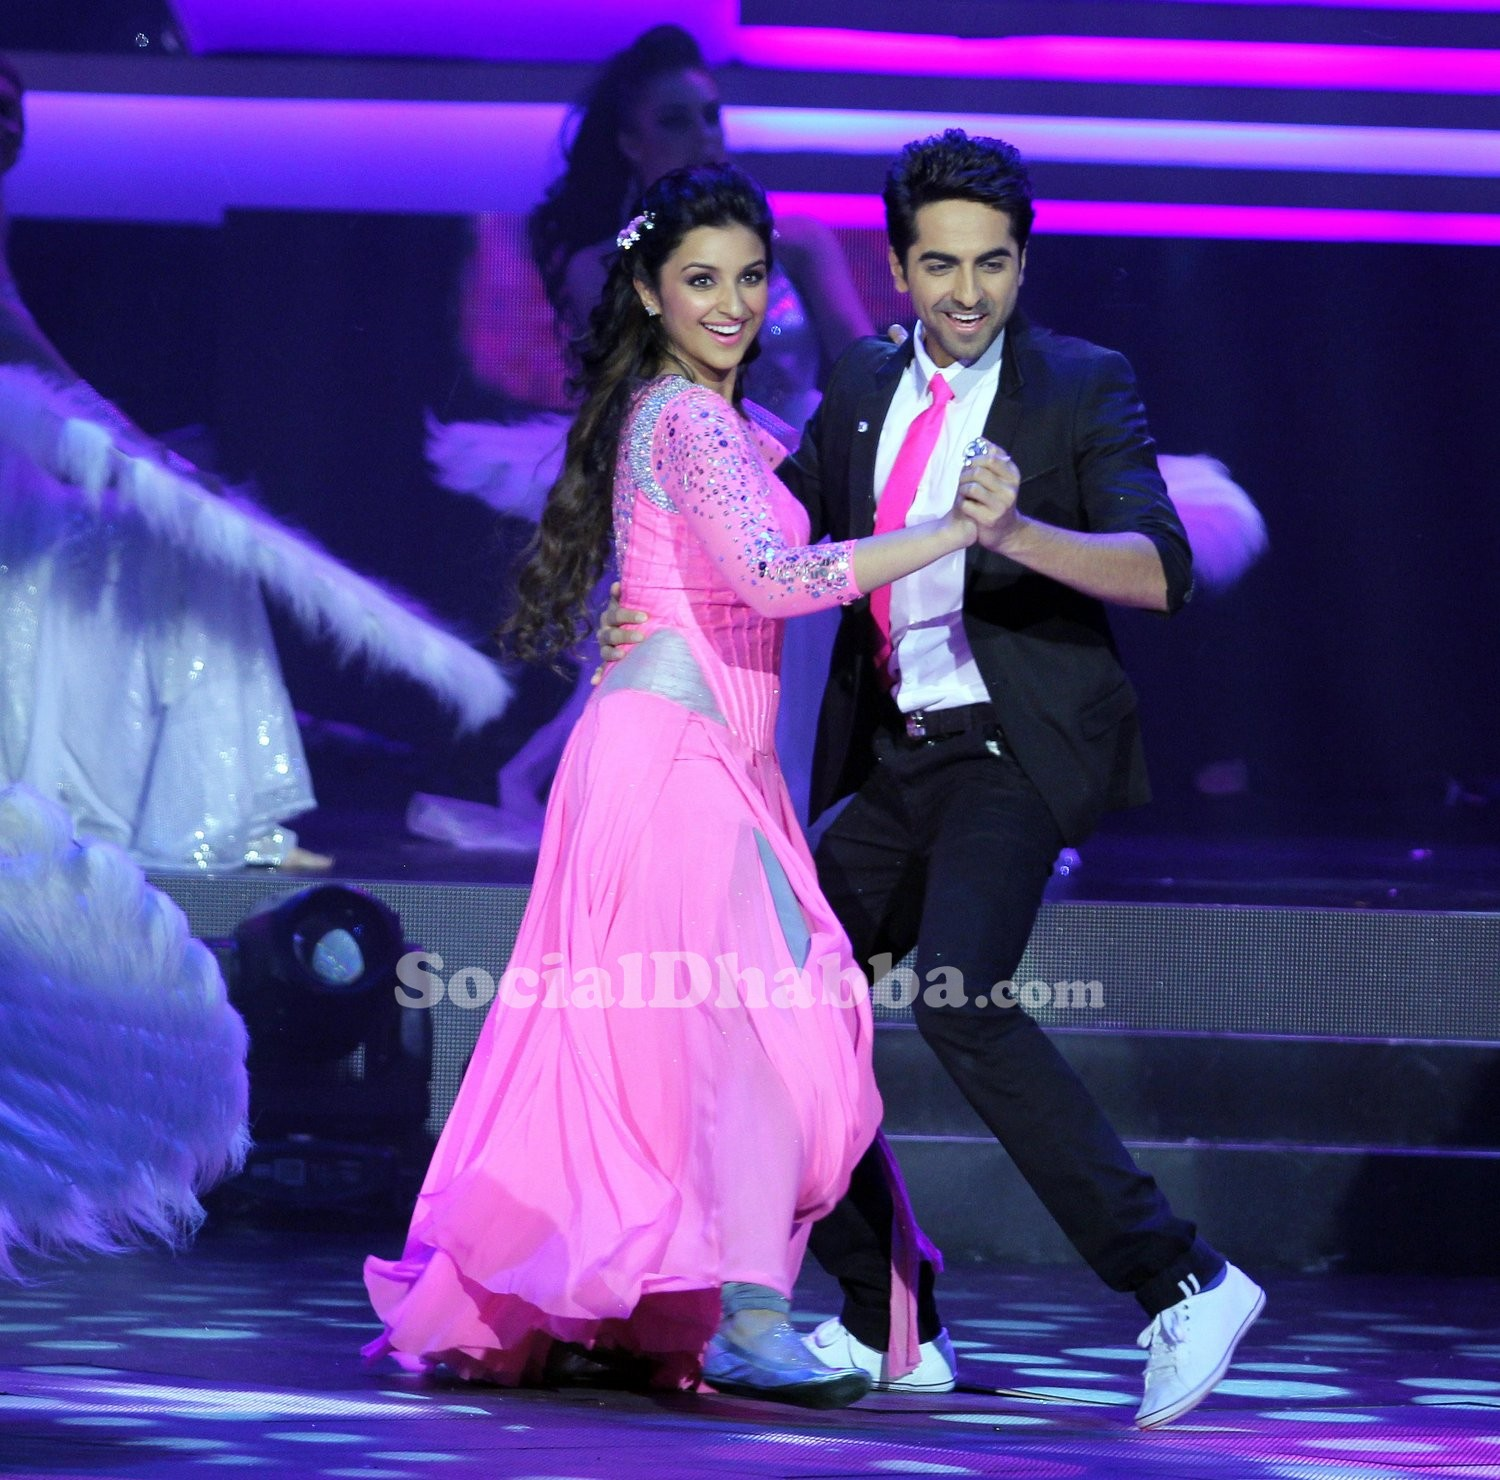 Parineeti-Chopra-Ayushmaan-Khurana-perform-at-the-14th-Tata-Motors-IIFA-Awards